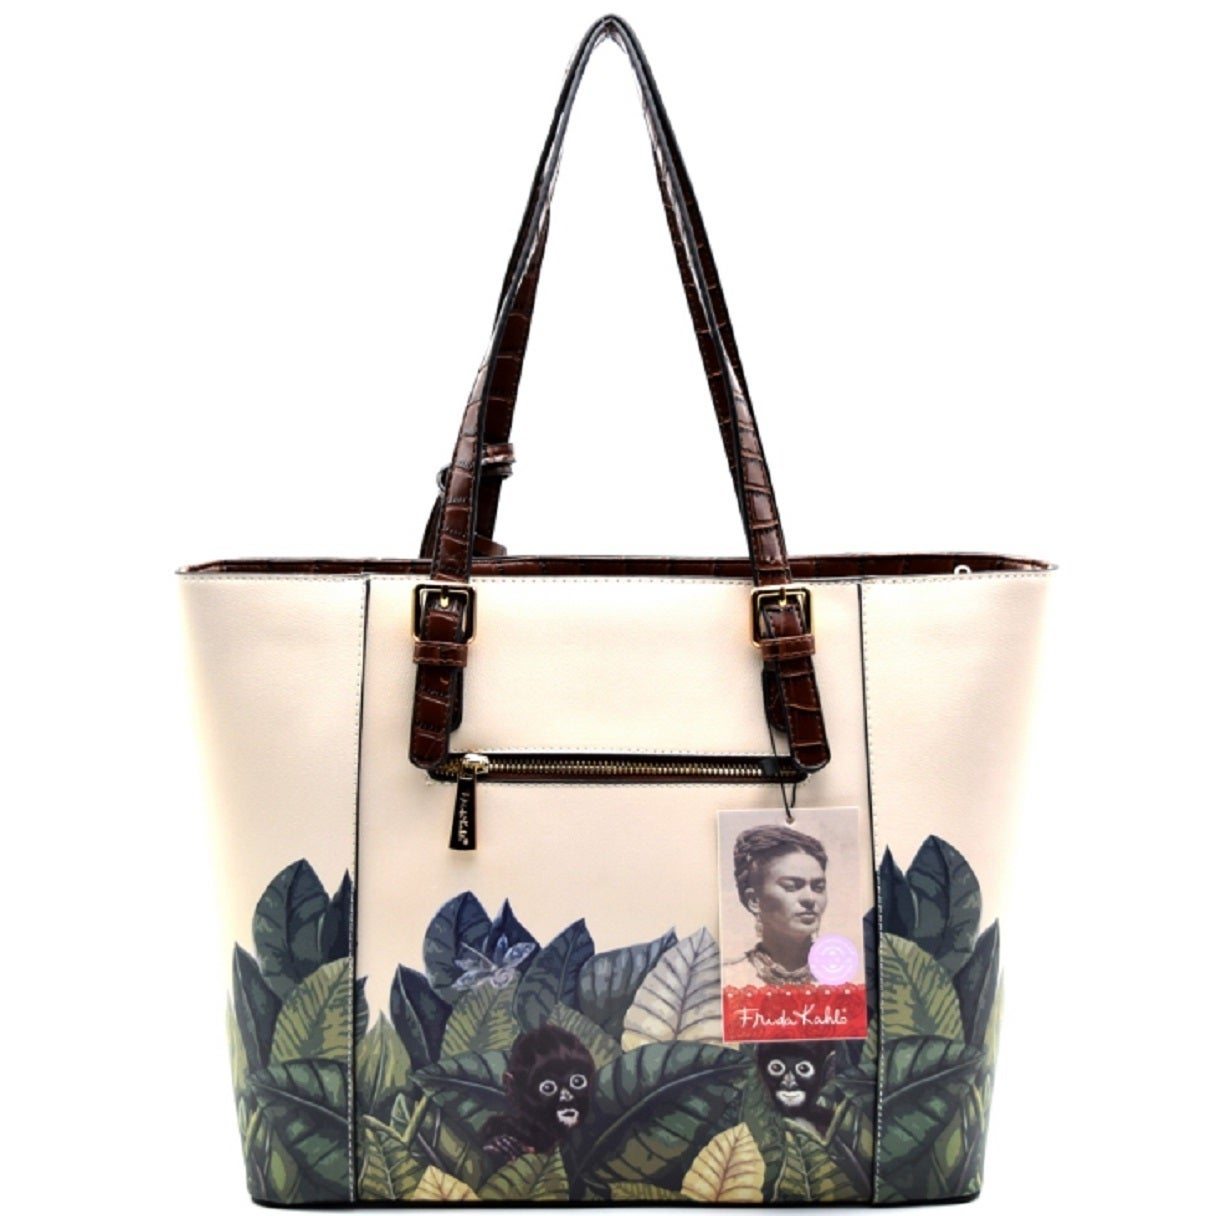 618065a68 Shop Frida Kahlo Jungle Series Shopper Tote Bag with Coin Purse - Free  Shipping Today - Overstock - 16088775